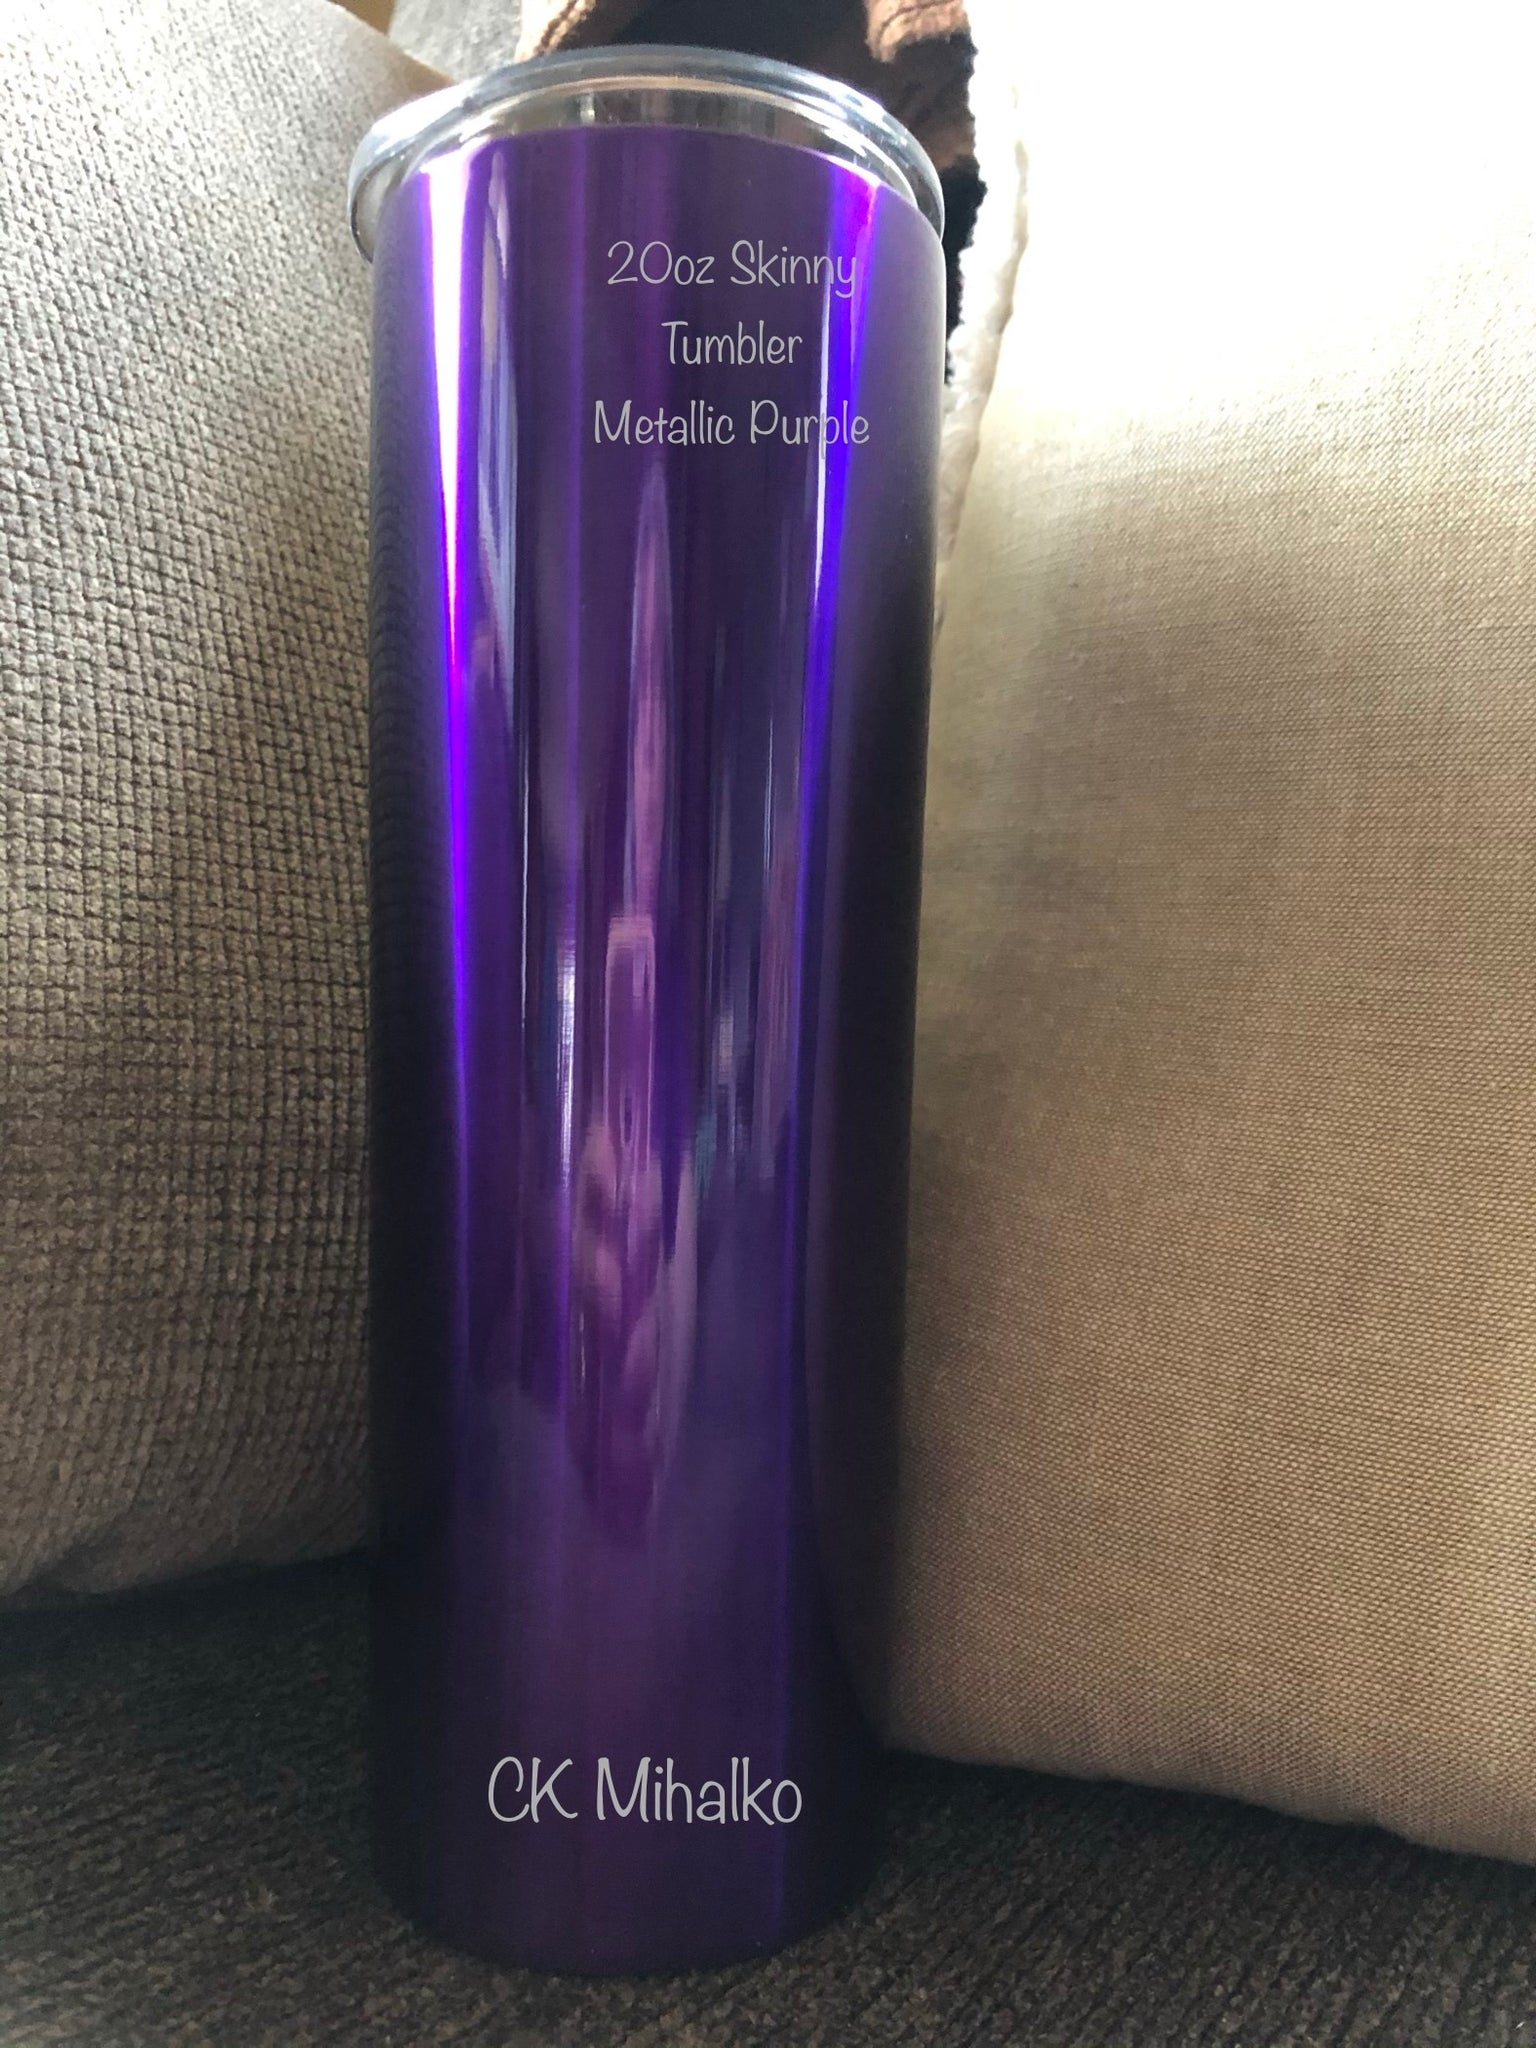 20oz tumbler - metallic purple